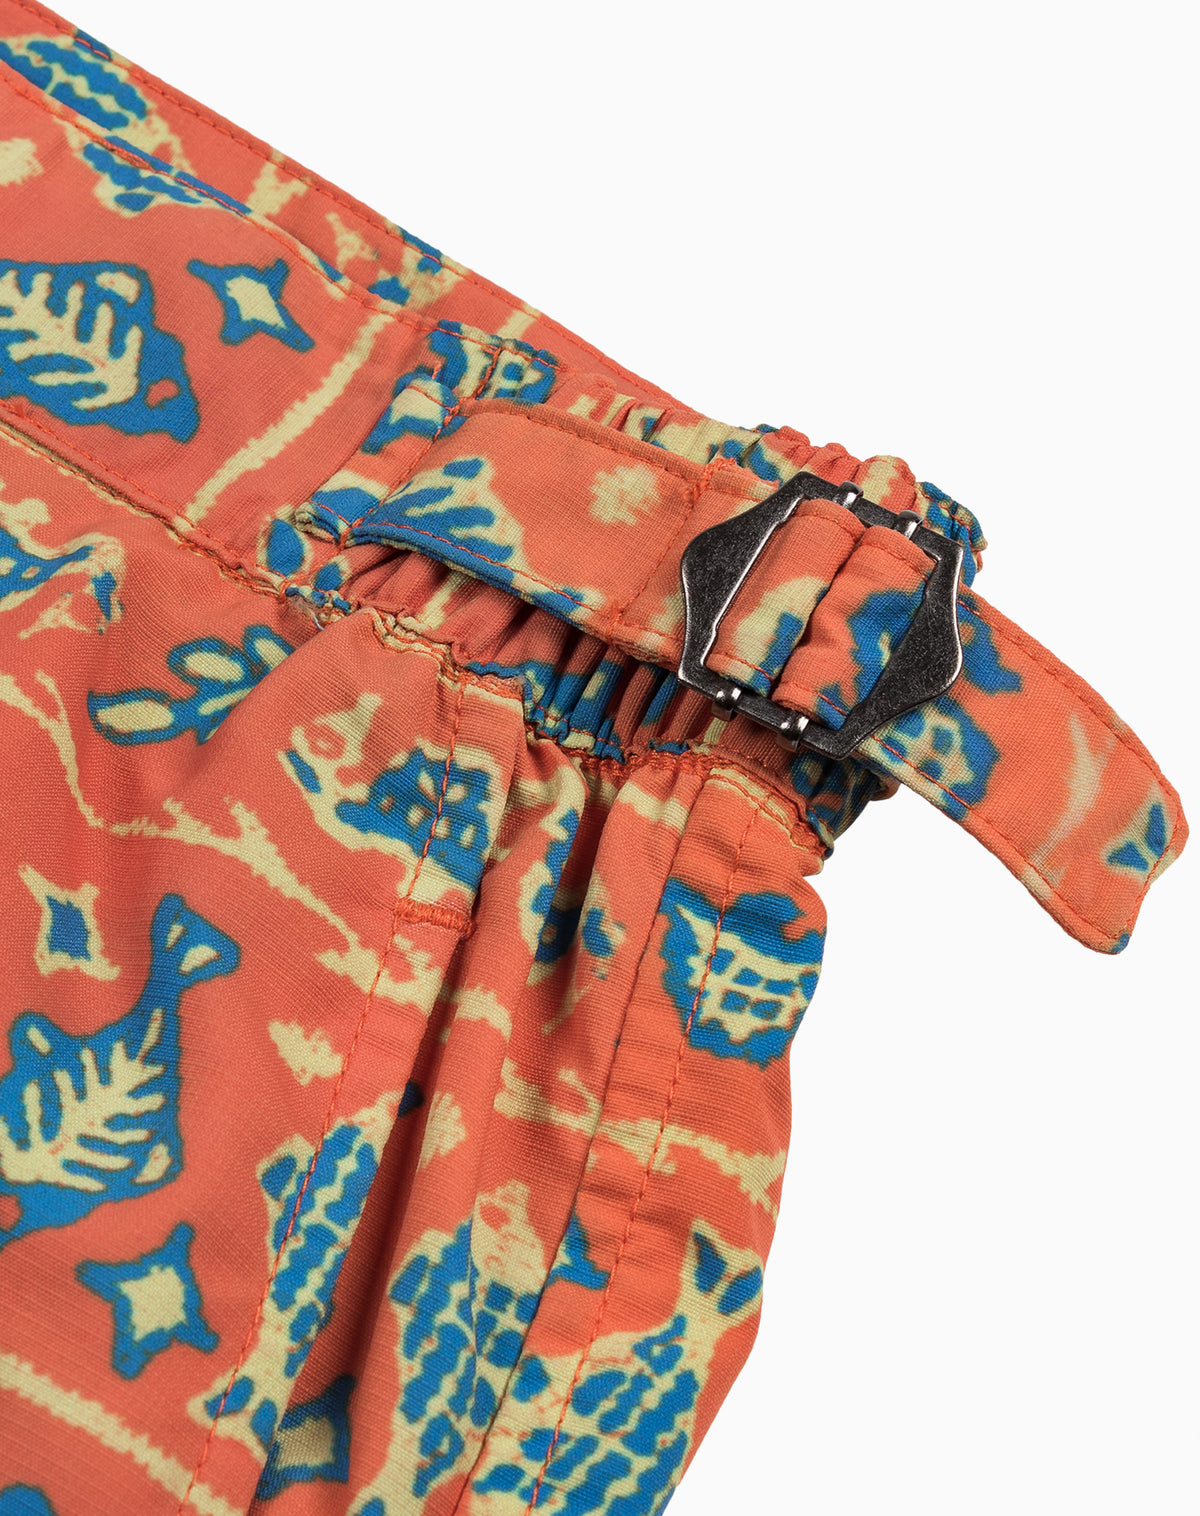 Tailored Trunk in Orange Batik Fish